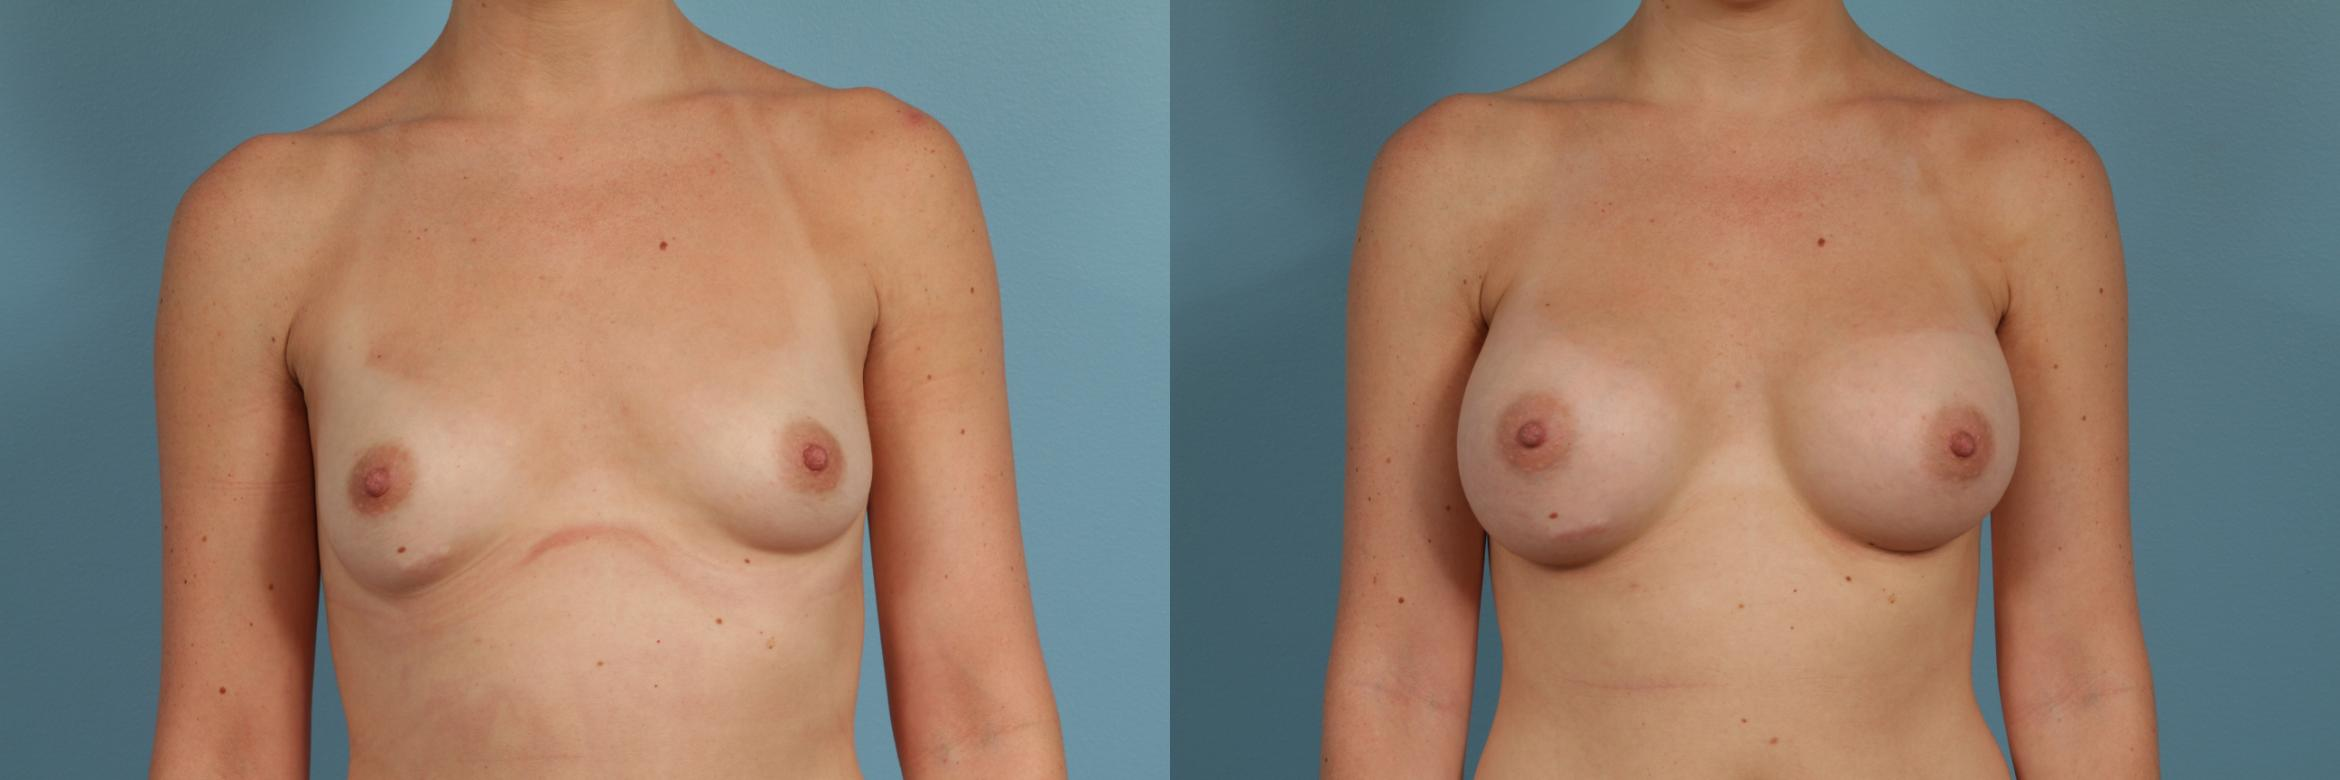 Breast Augmentation Case 300 Before & After View #1 | Chicago, IL | TLKM Plastic Surgery